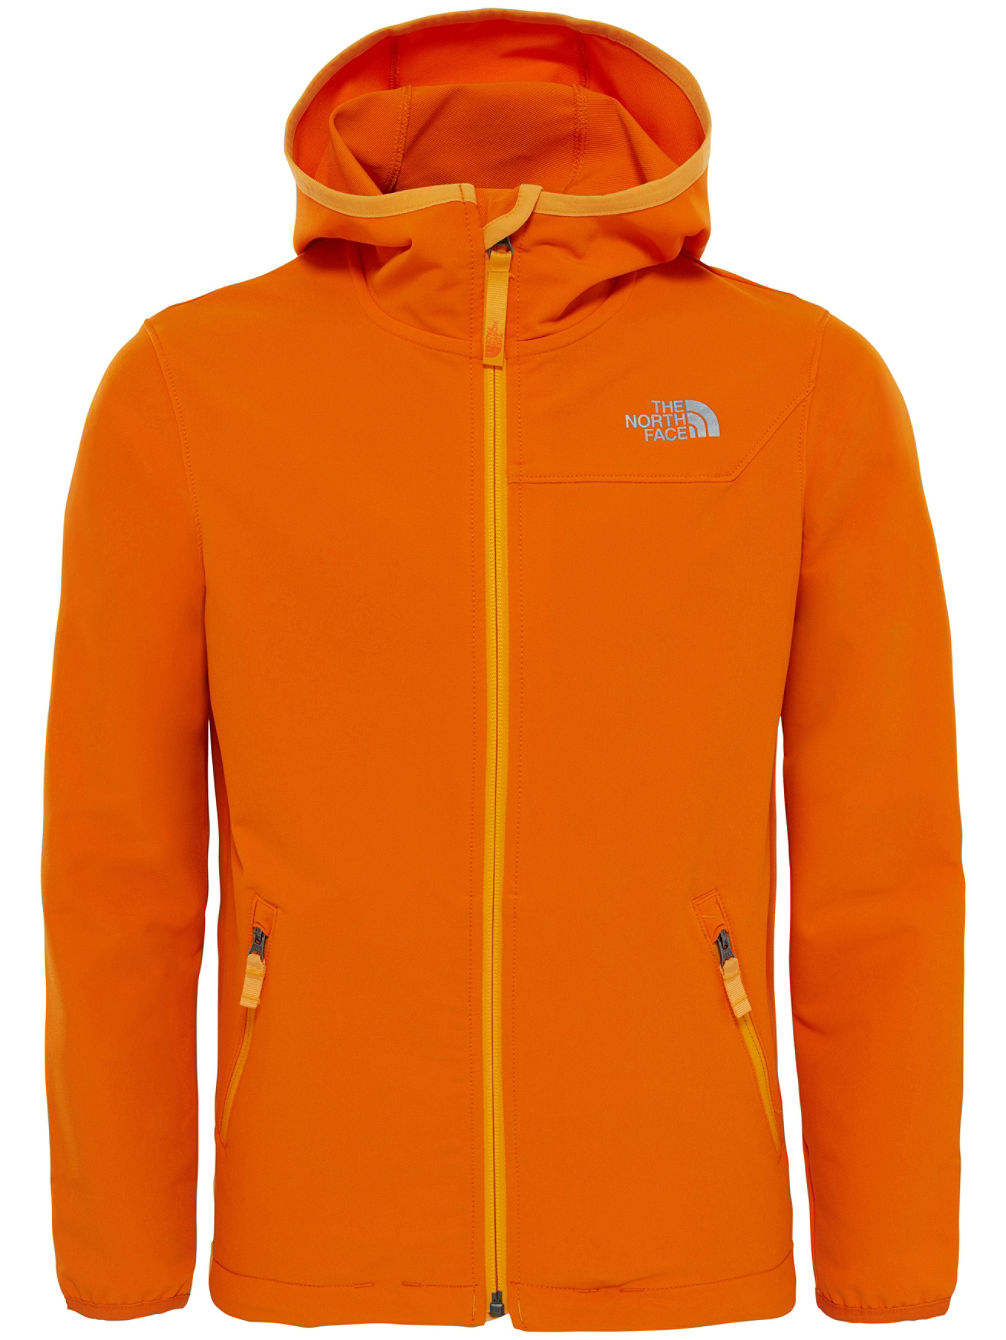 22509c90032 Buy THE NORTH FACE Exploration Softshell Jacket Boys online at blue ...